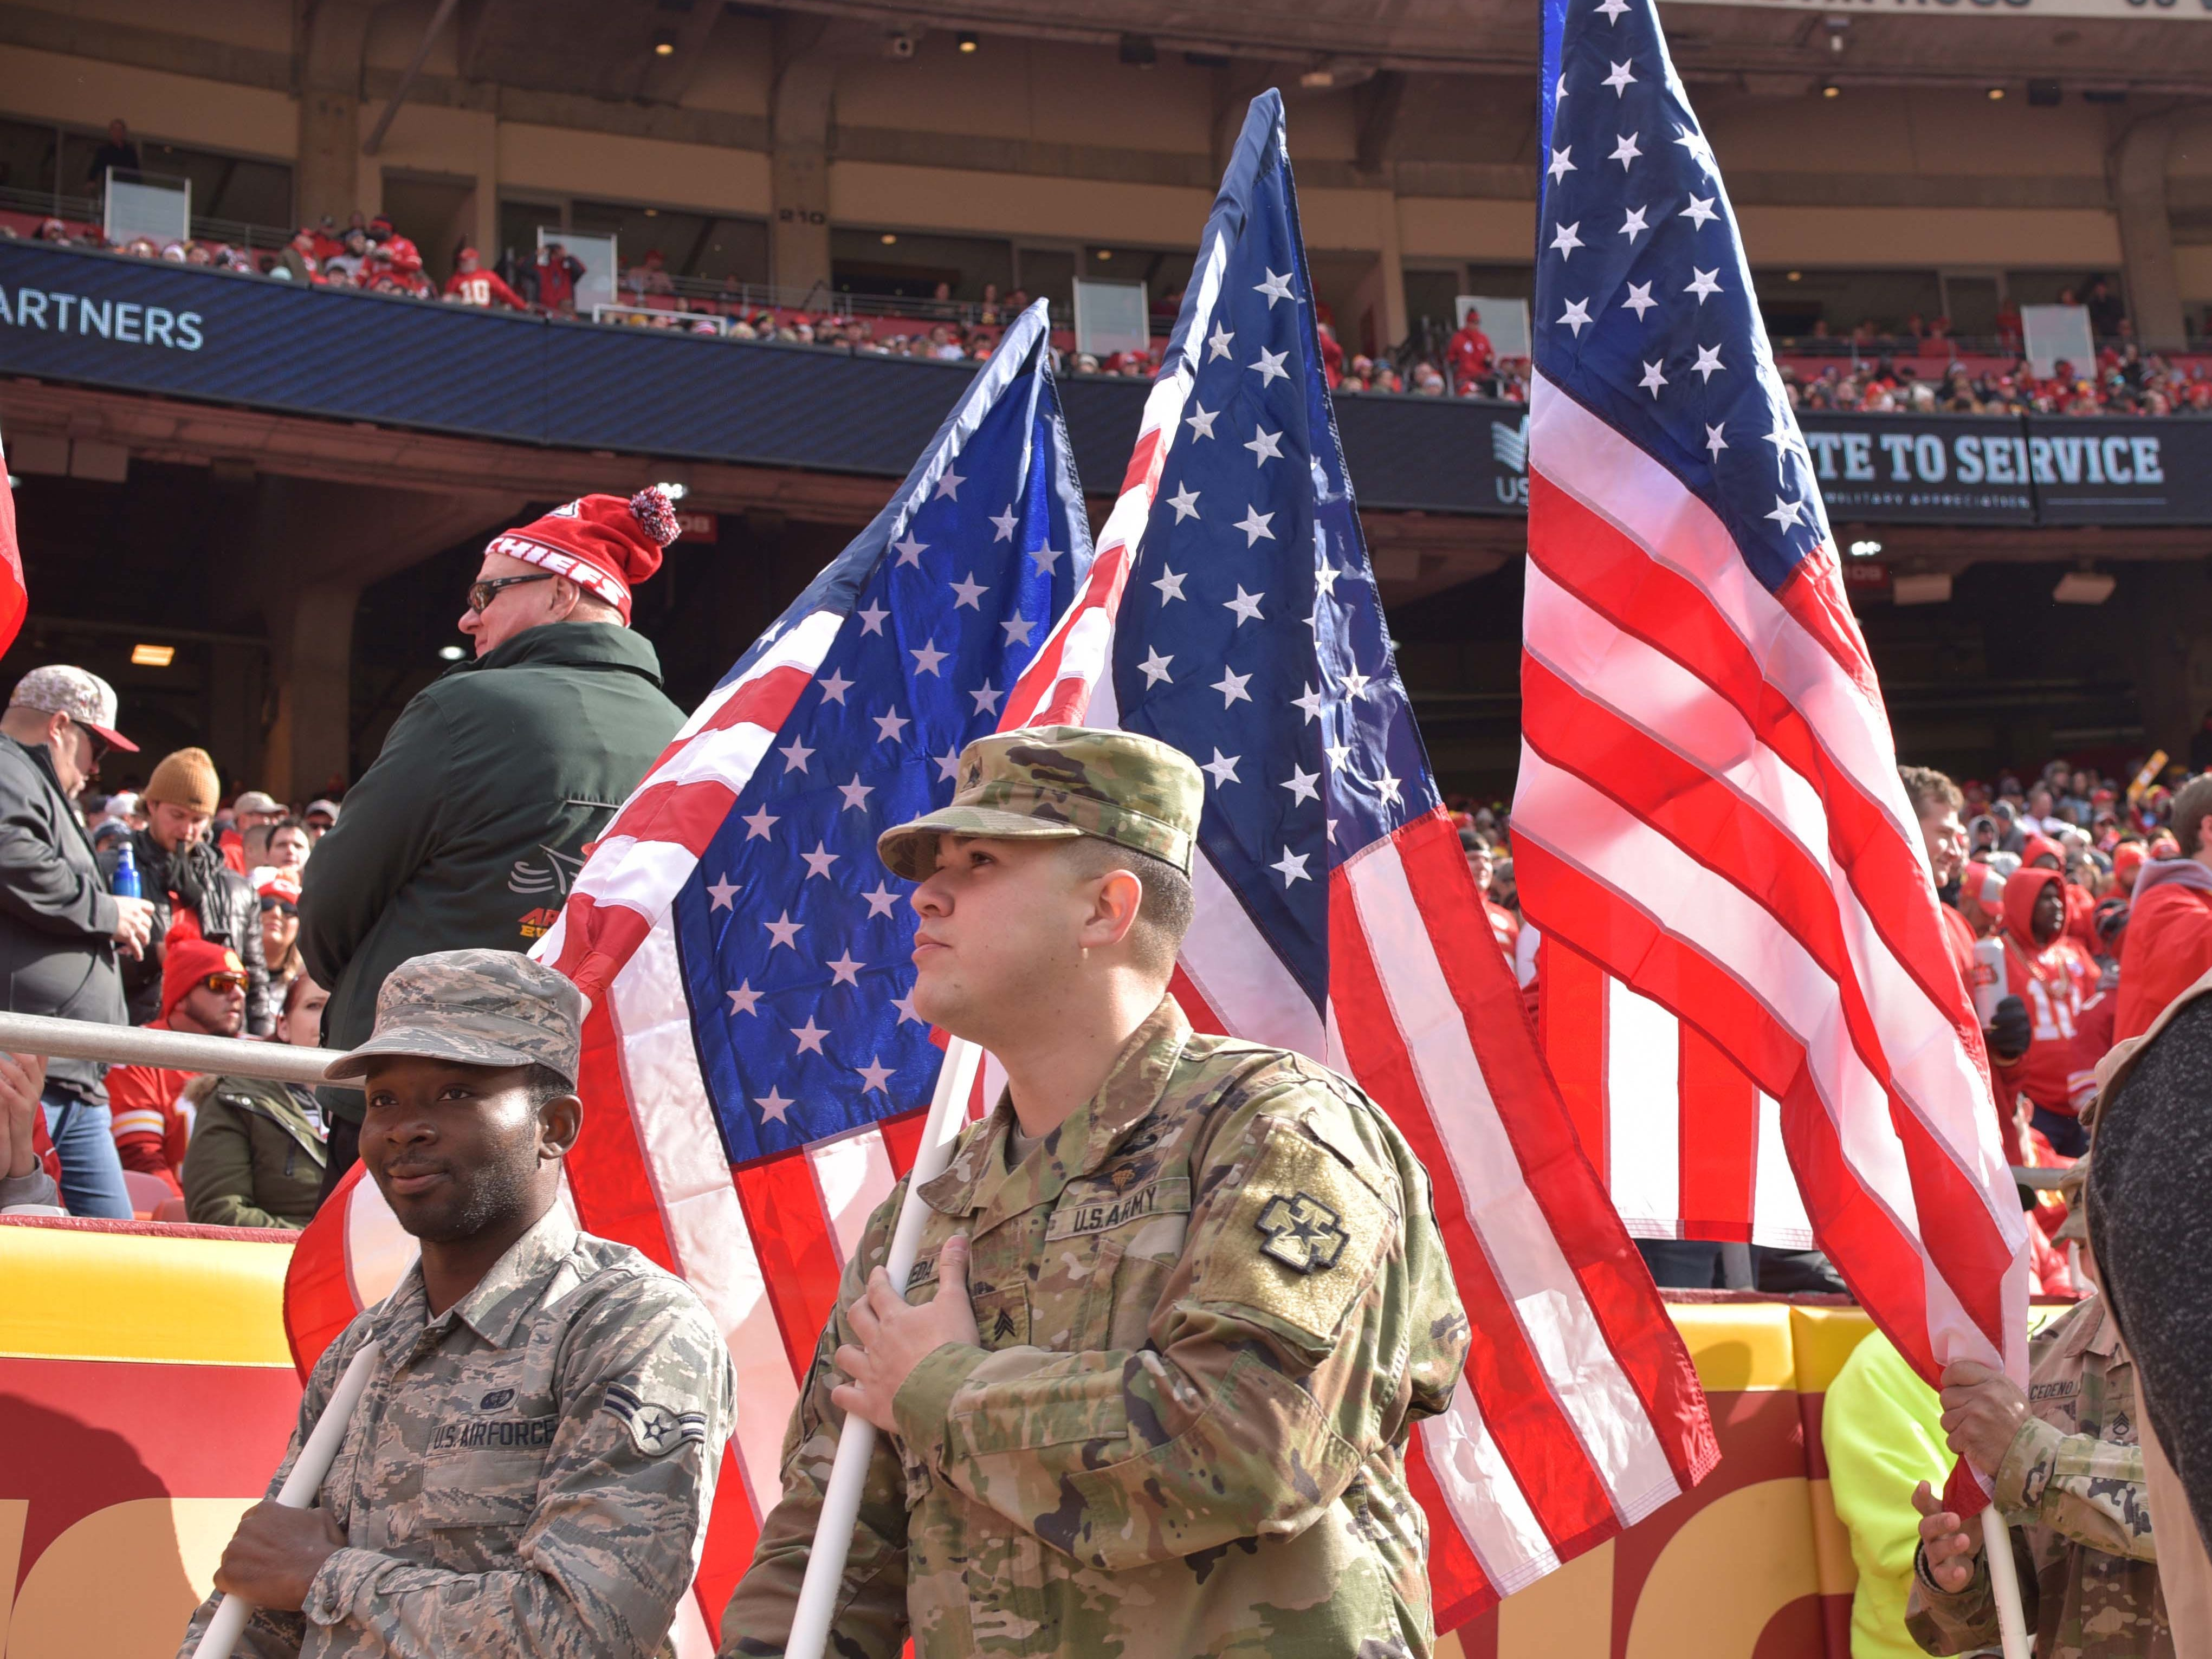 Nov 11, 2018; Kansas City, MO, USA; Armed forces service members carry American flags on the sidelines in preparation for the half-time Salute to Service activities during the first half of the game between the Kansas City Chiefs and Arizona Cardinals at Arrowhead Stadium. Mandatory Credit: Denny Medley-USA TODAY Sports